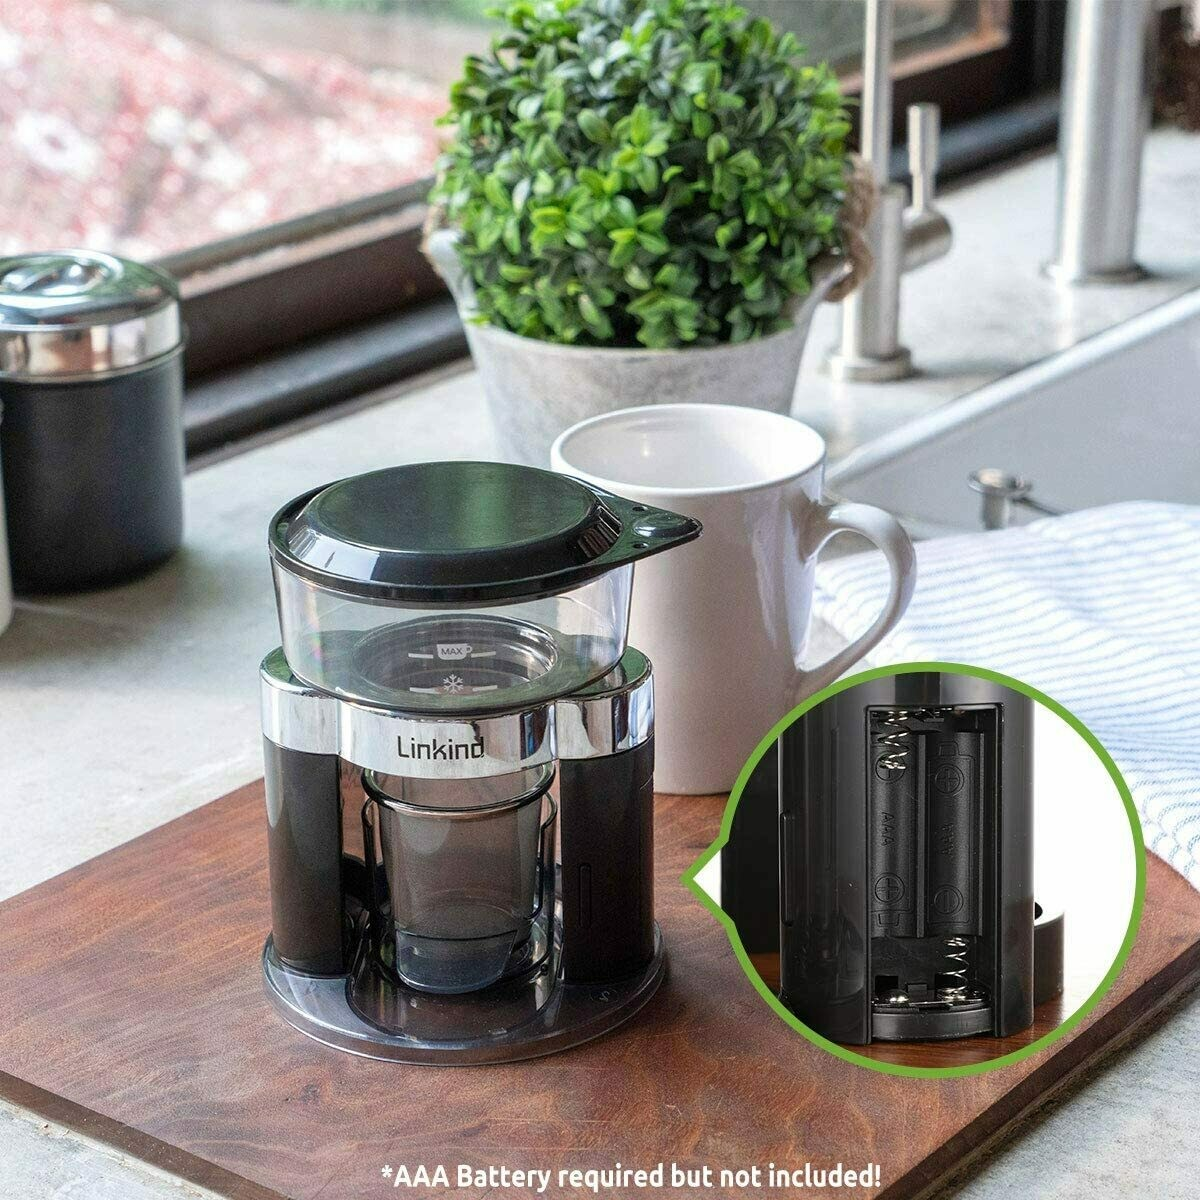 Linkind Automatic Pour Over Coffee Make